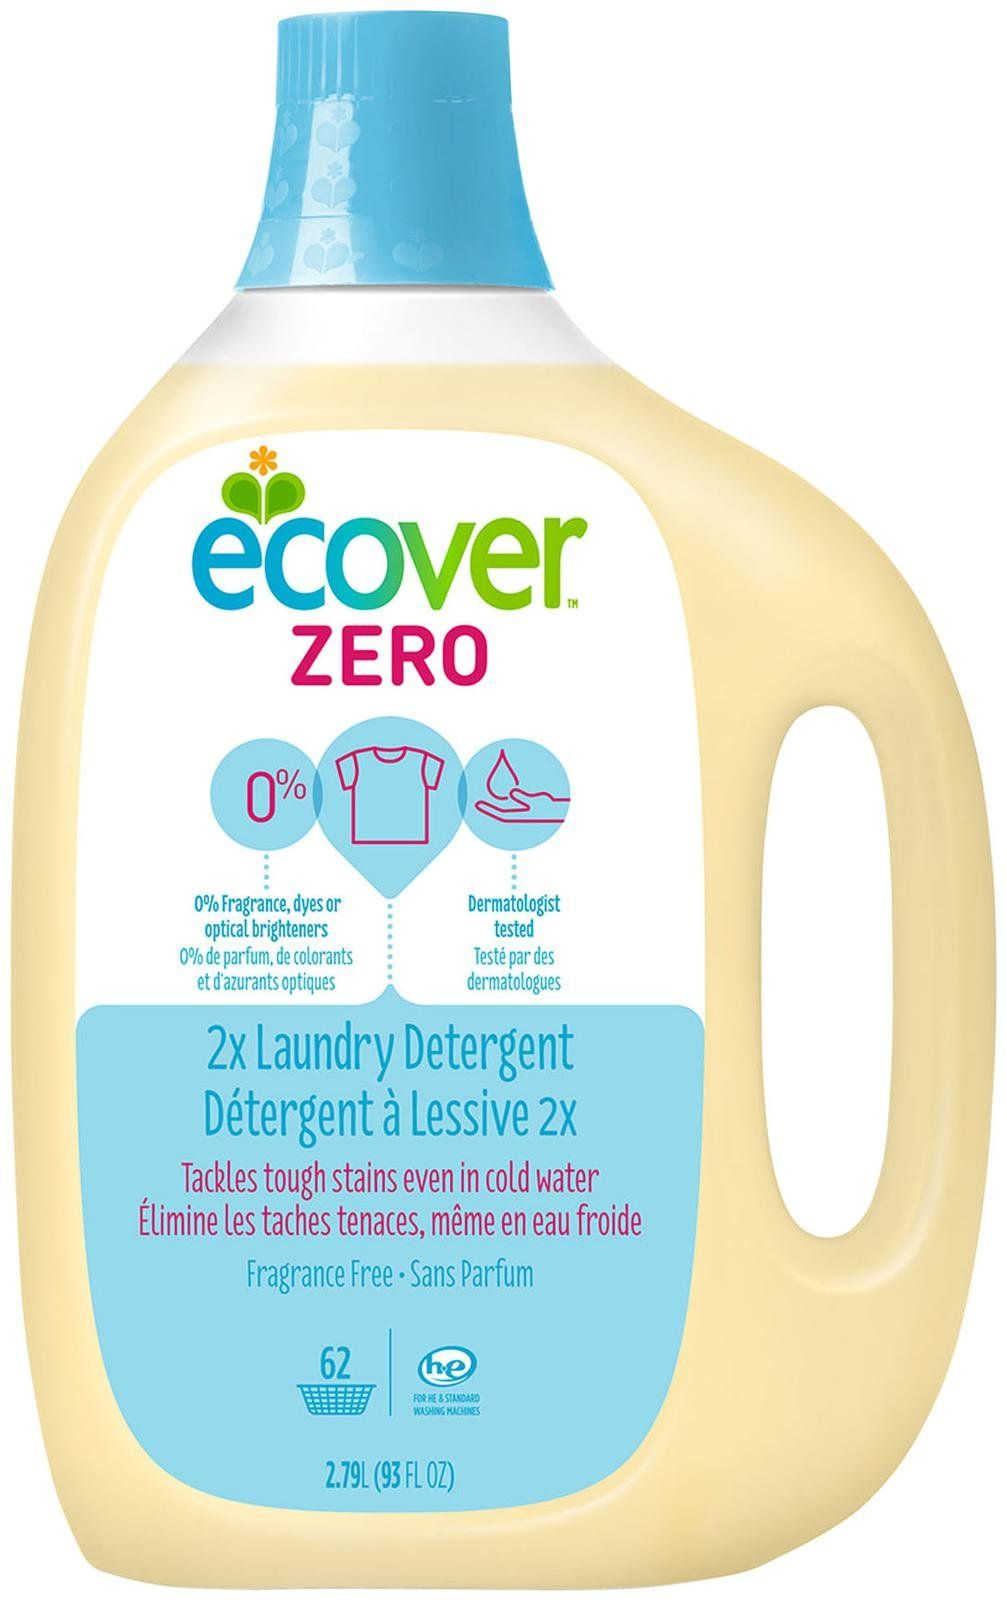 Ecover Laundry Detergent Zero Fragrance Free Products Laundry